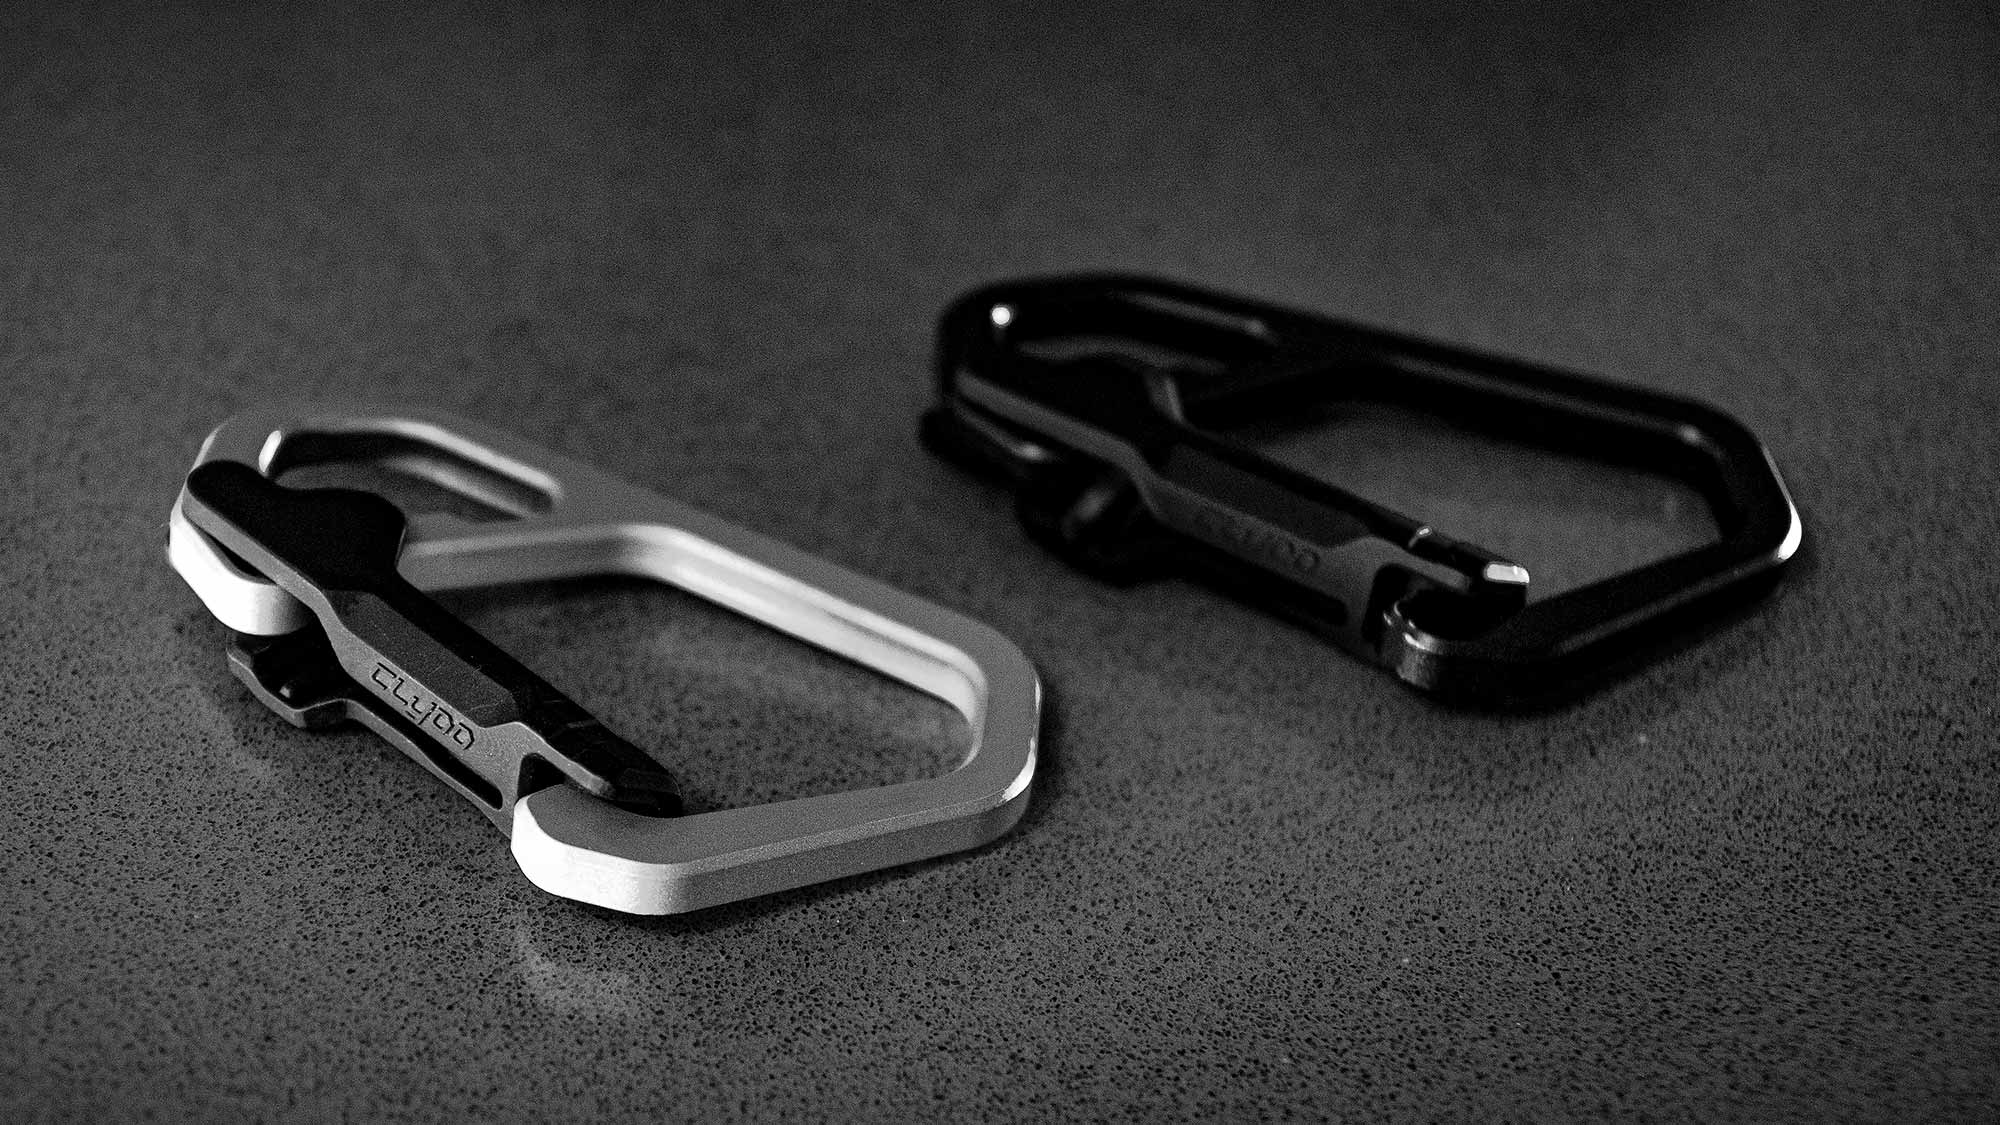 CLYOO Carabiner-style Everyday Carry